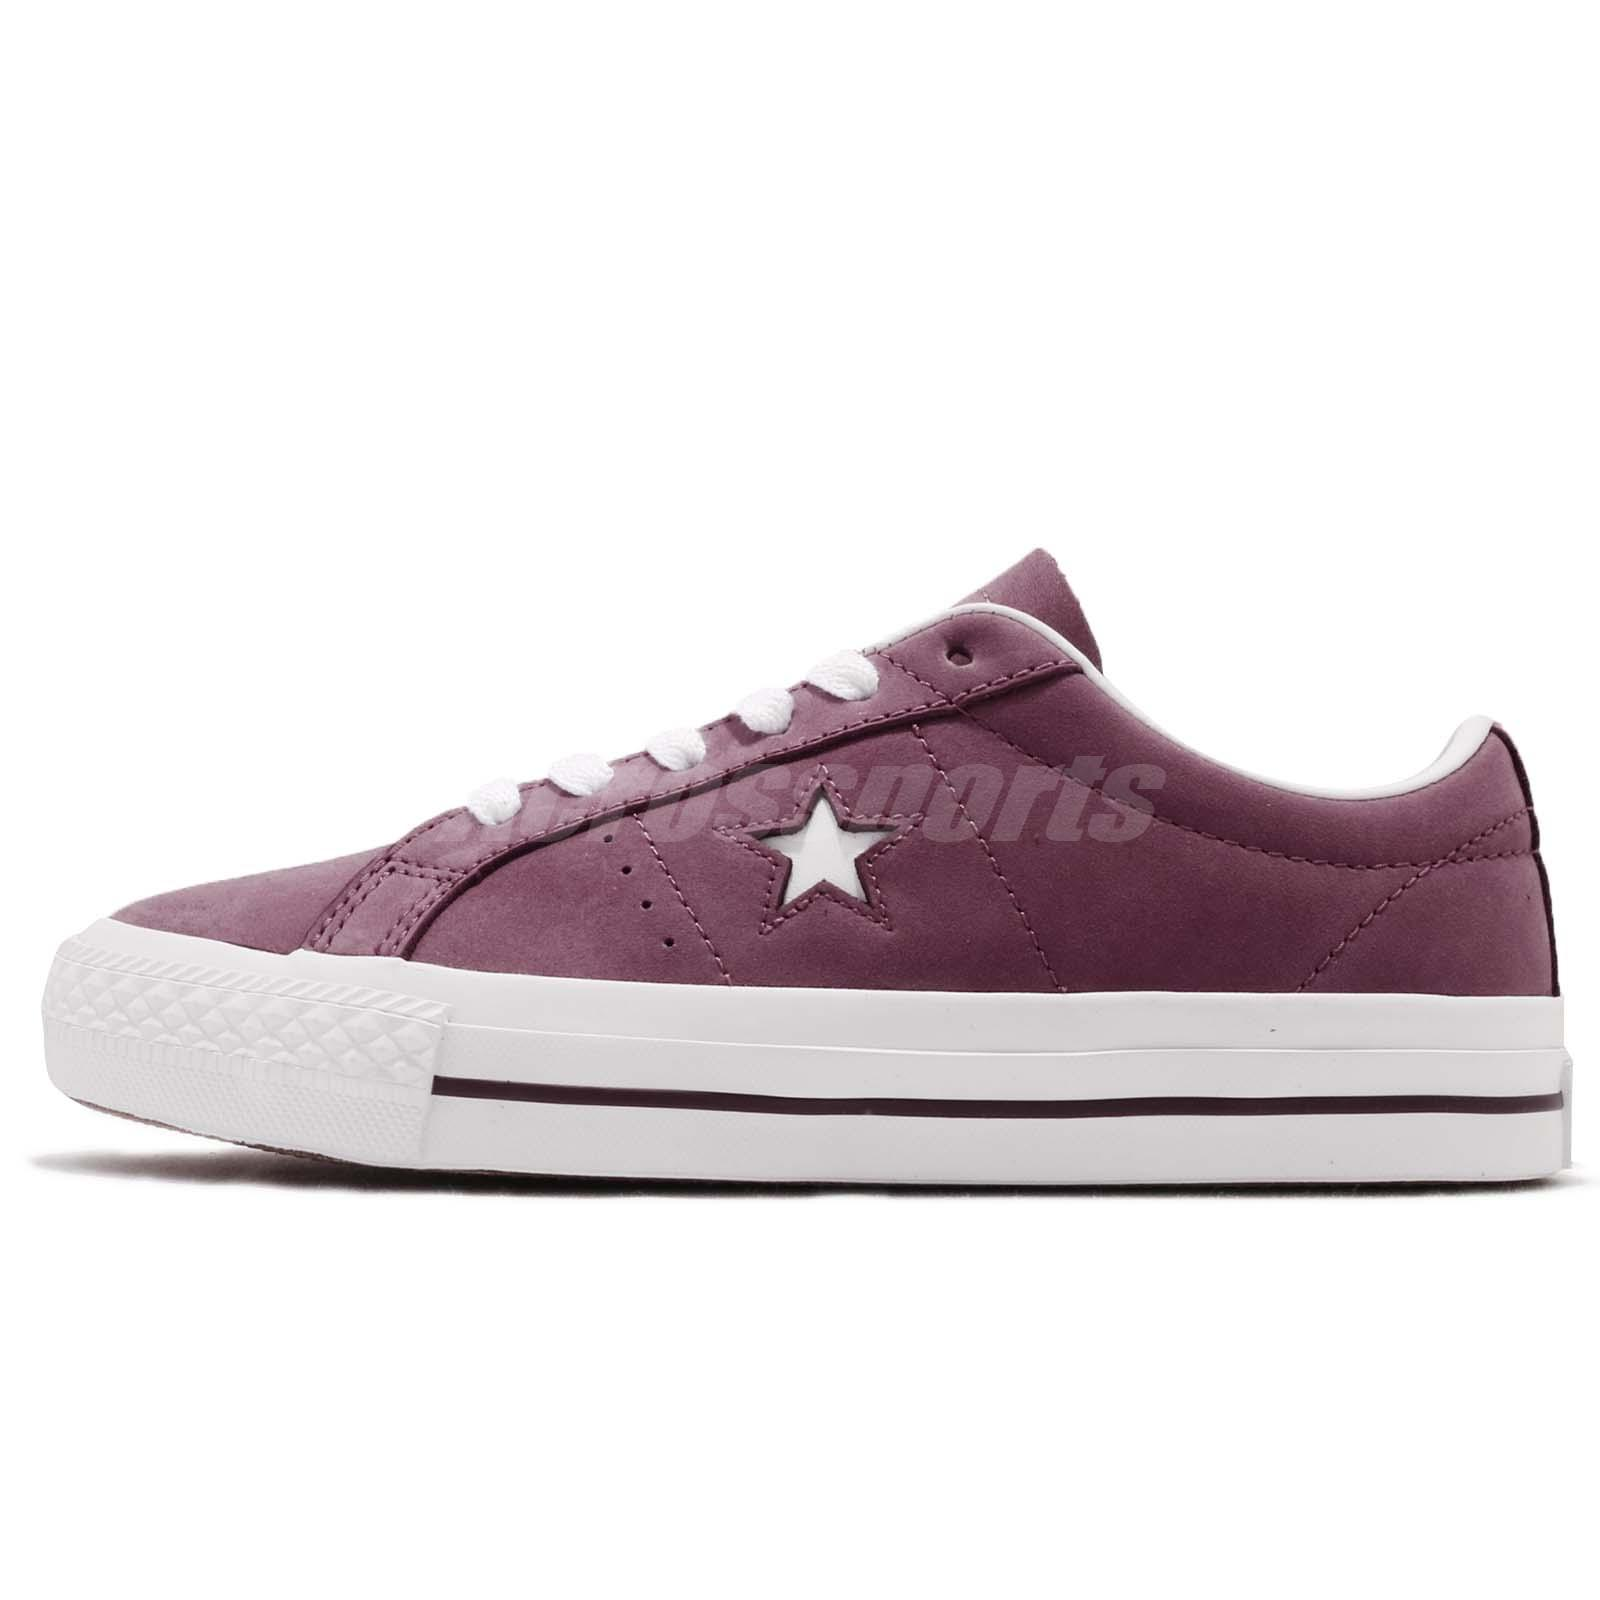 21f93bc46db7 Converse One Star Pro Purple White Men Casual Classic Shoes Sneakers 160536C